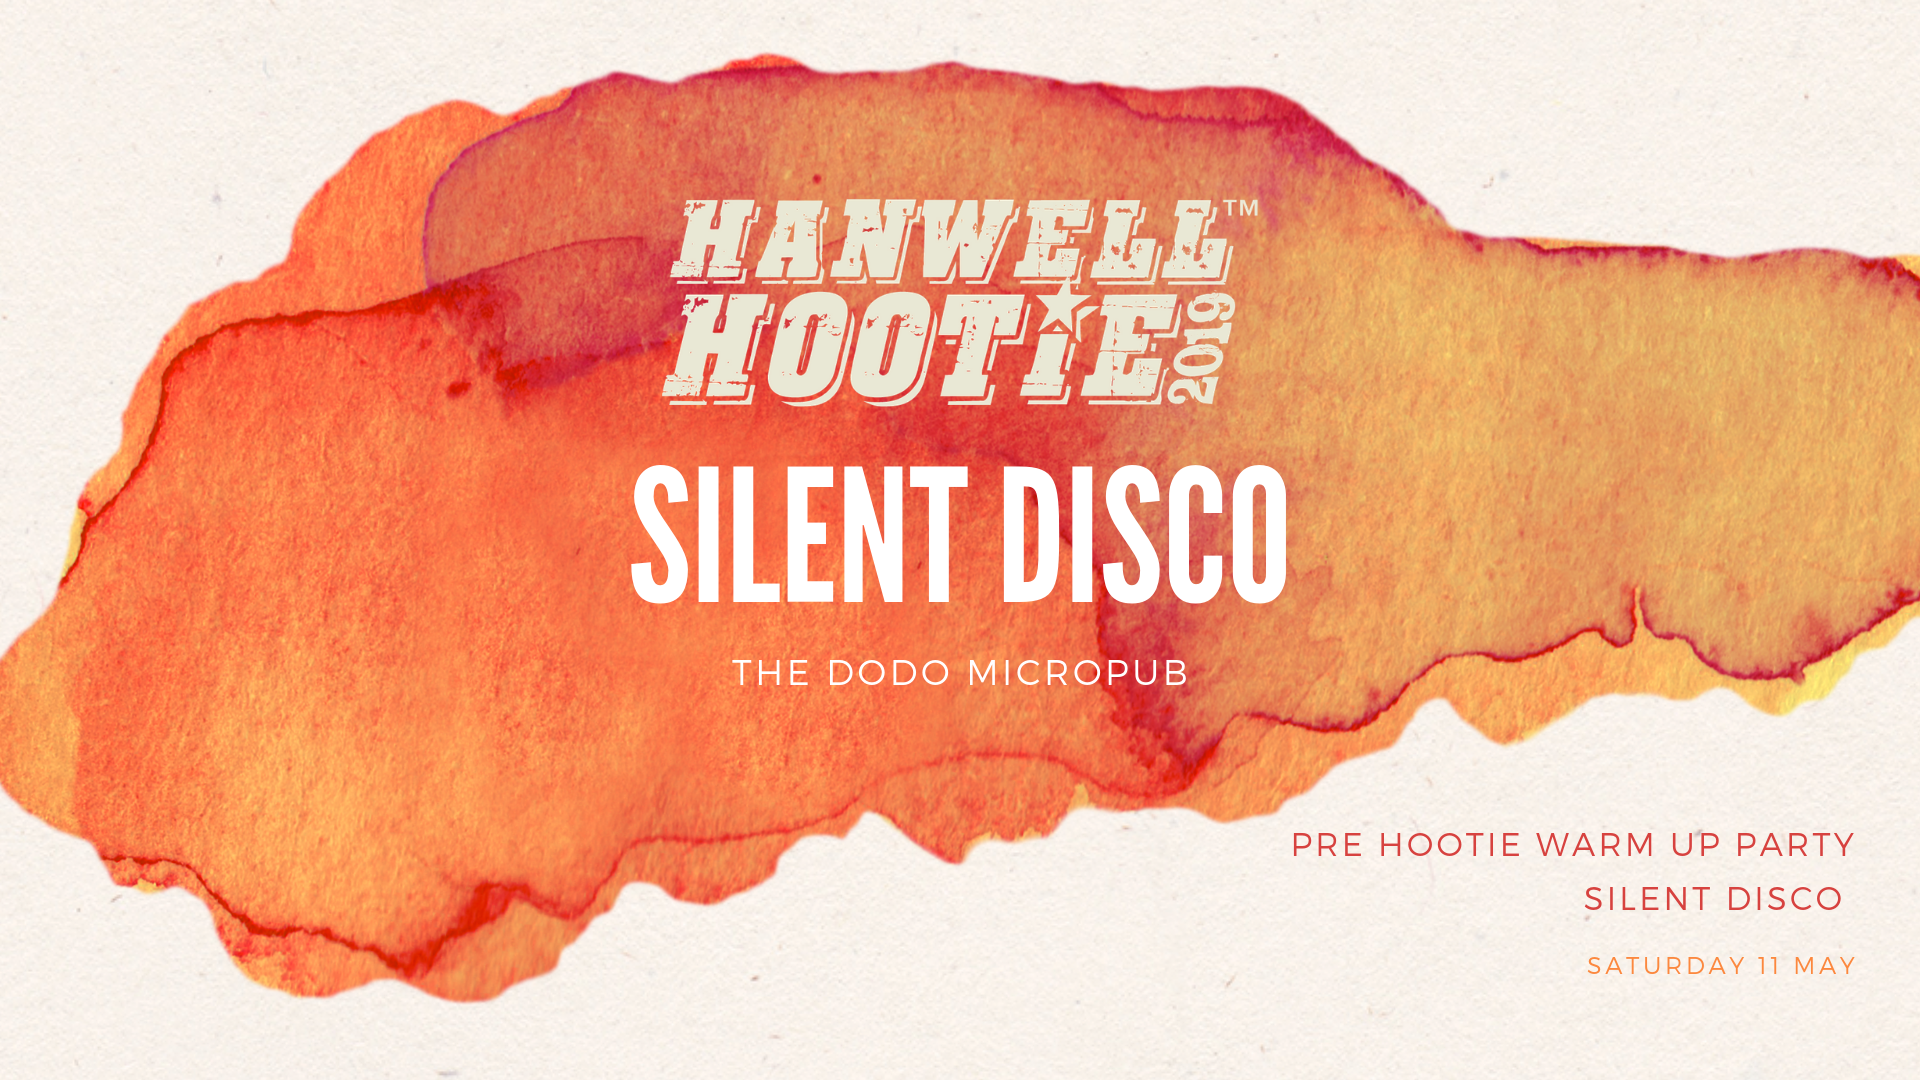 Hanwell Hootie Silent Disco Dodo Micropub.png